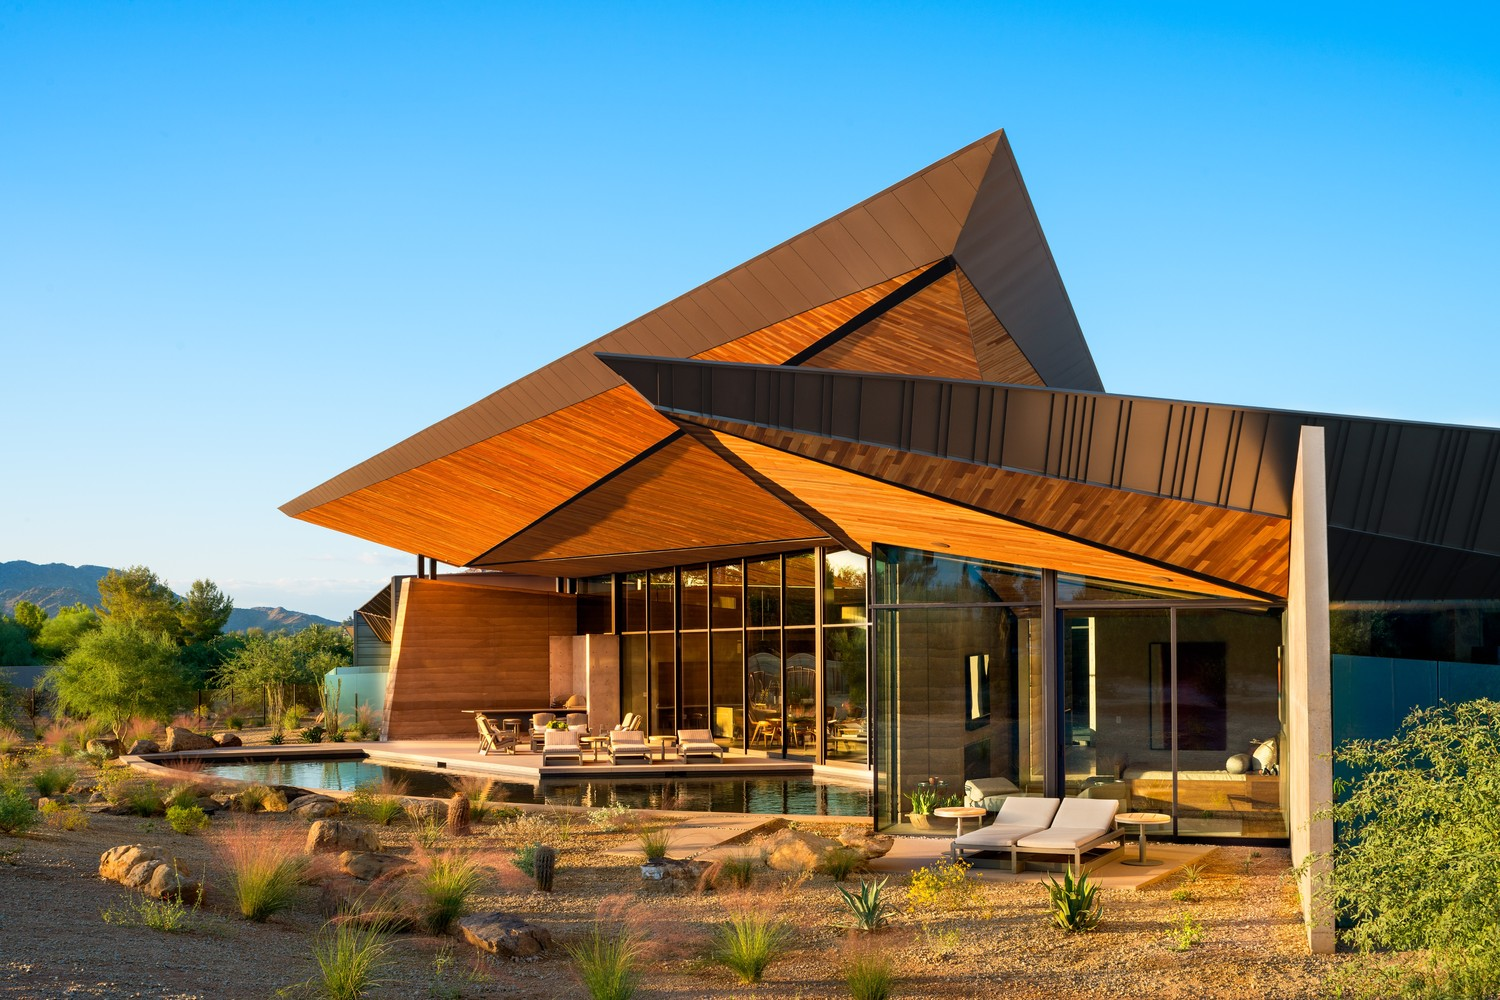 Dancing Light House In Arizona Usa By Kendle Design Collaborative Features A Soaring Angular Canopy Roof